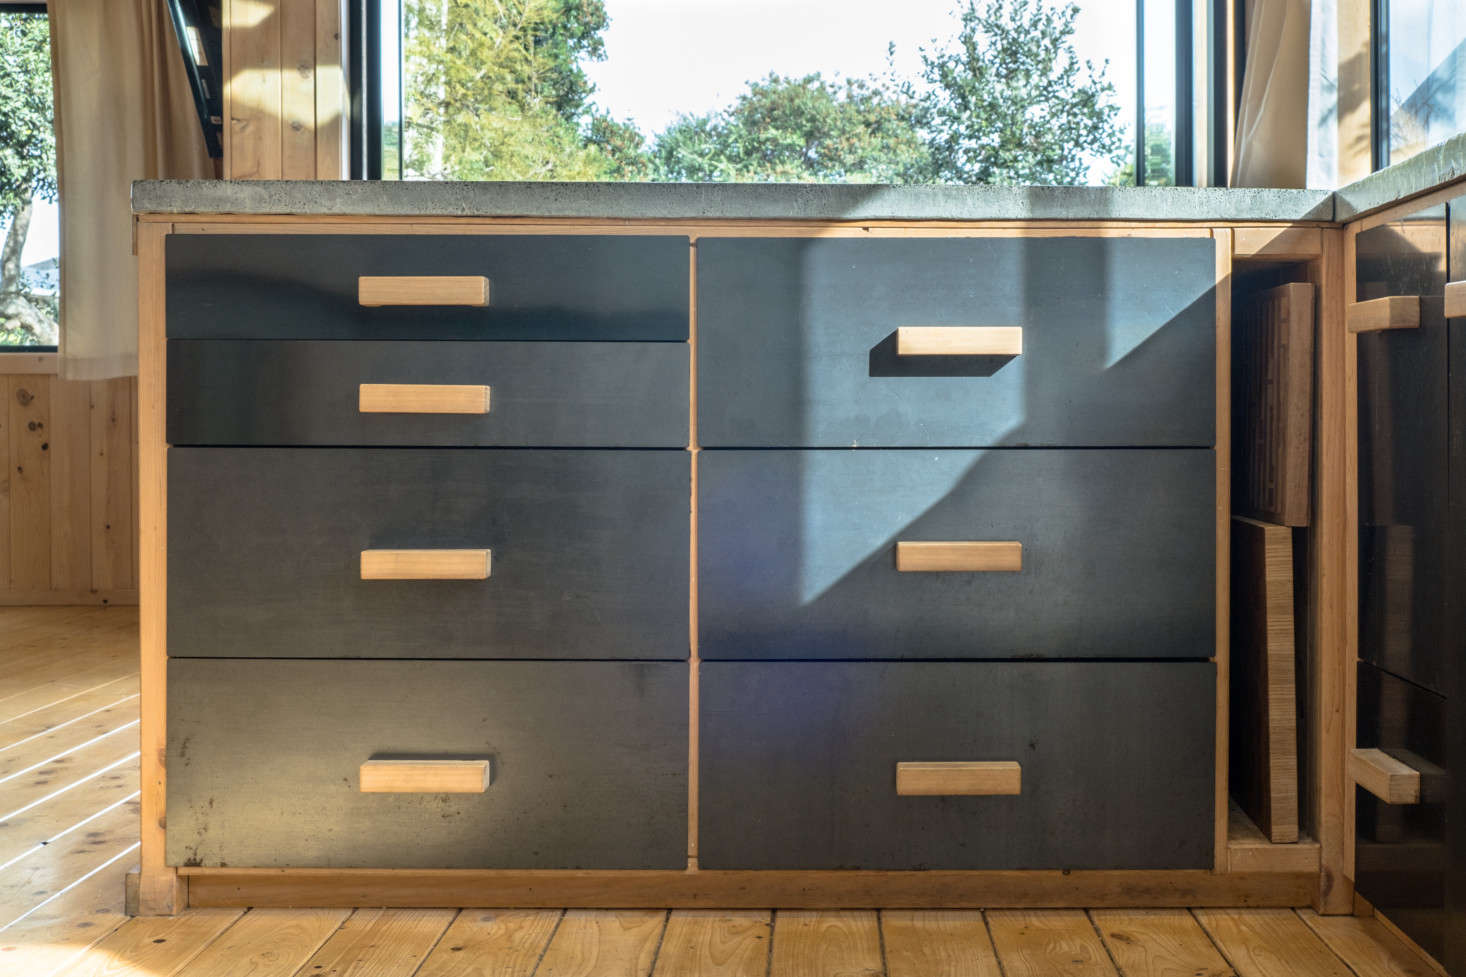 The steel-fronted drawers have handmade wooden pulls. In hindsight, George says, it would have been more cost-effective to buy kitchen cabinets than to build them: